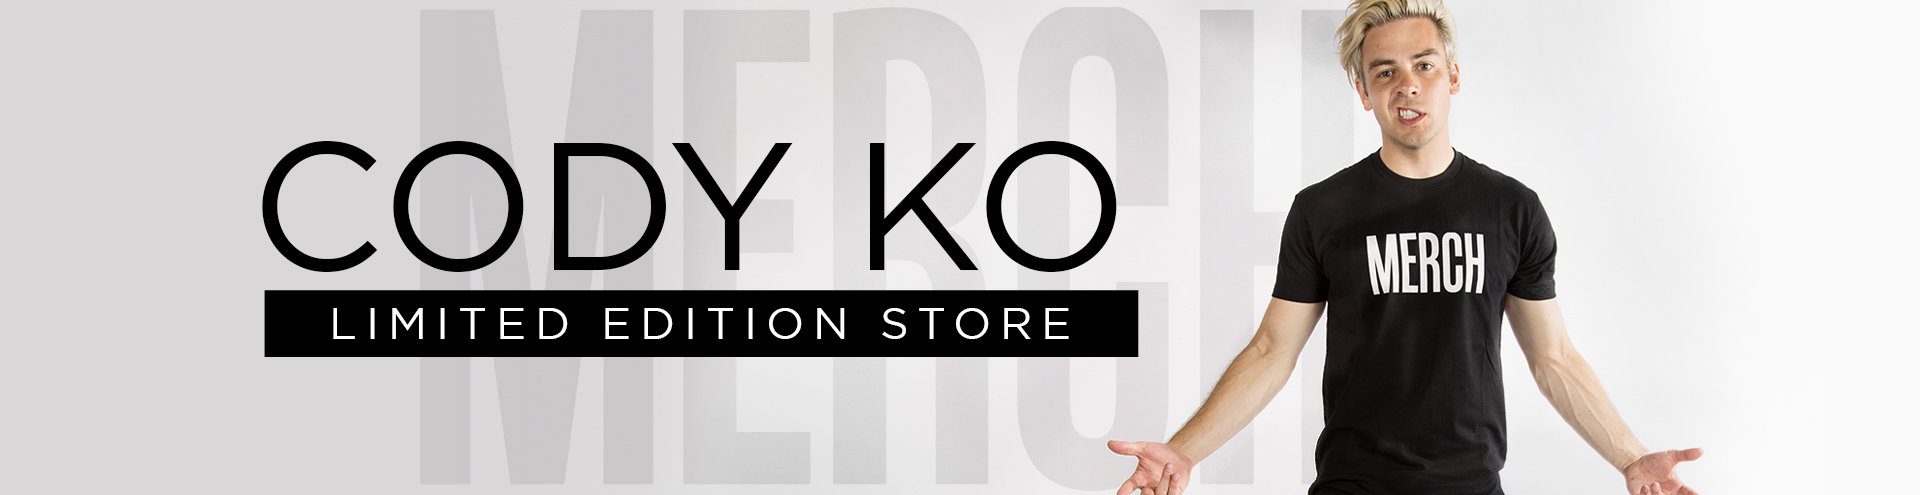 Cody Ko Official Store Store